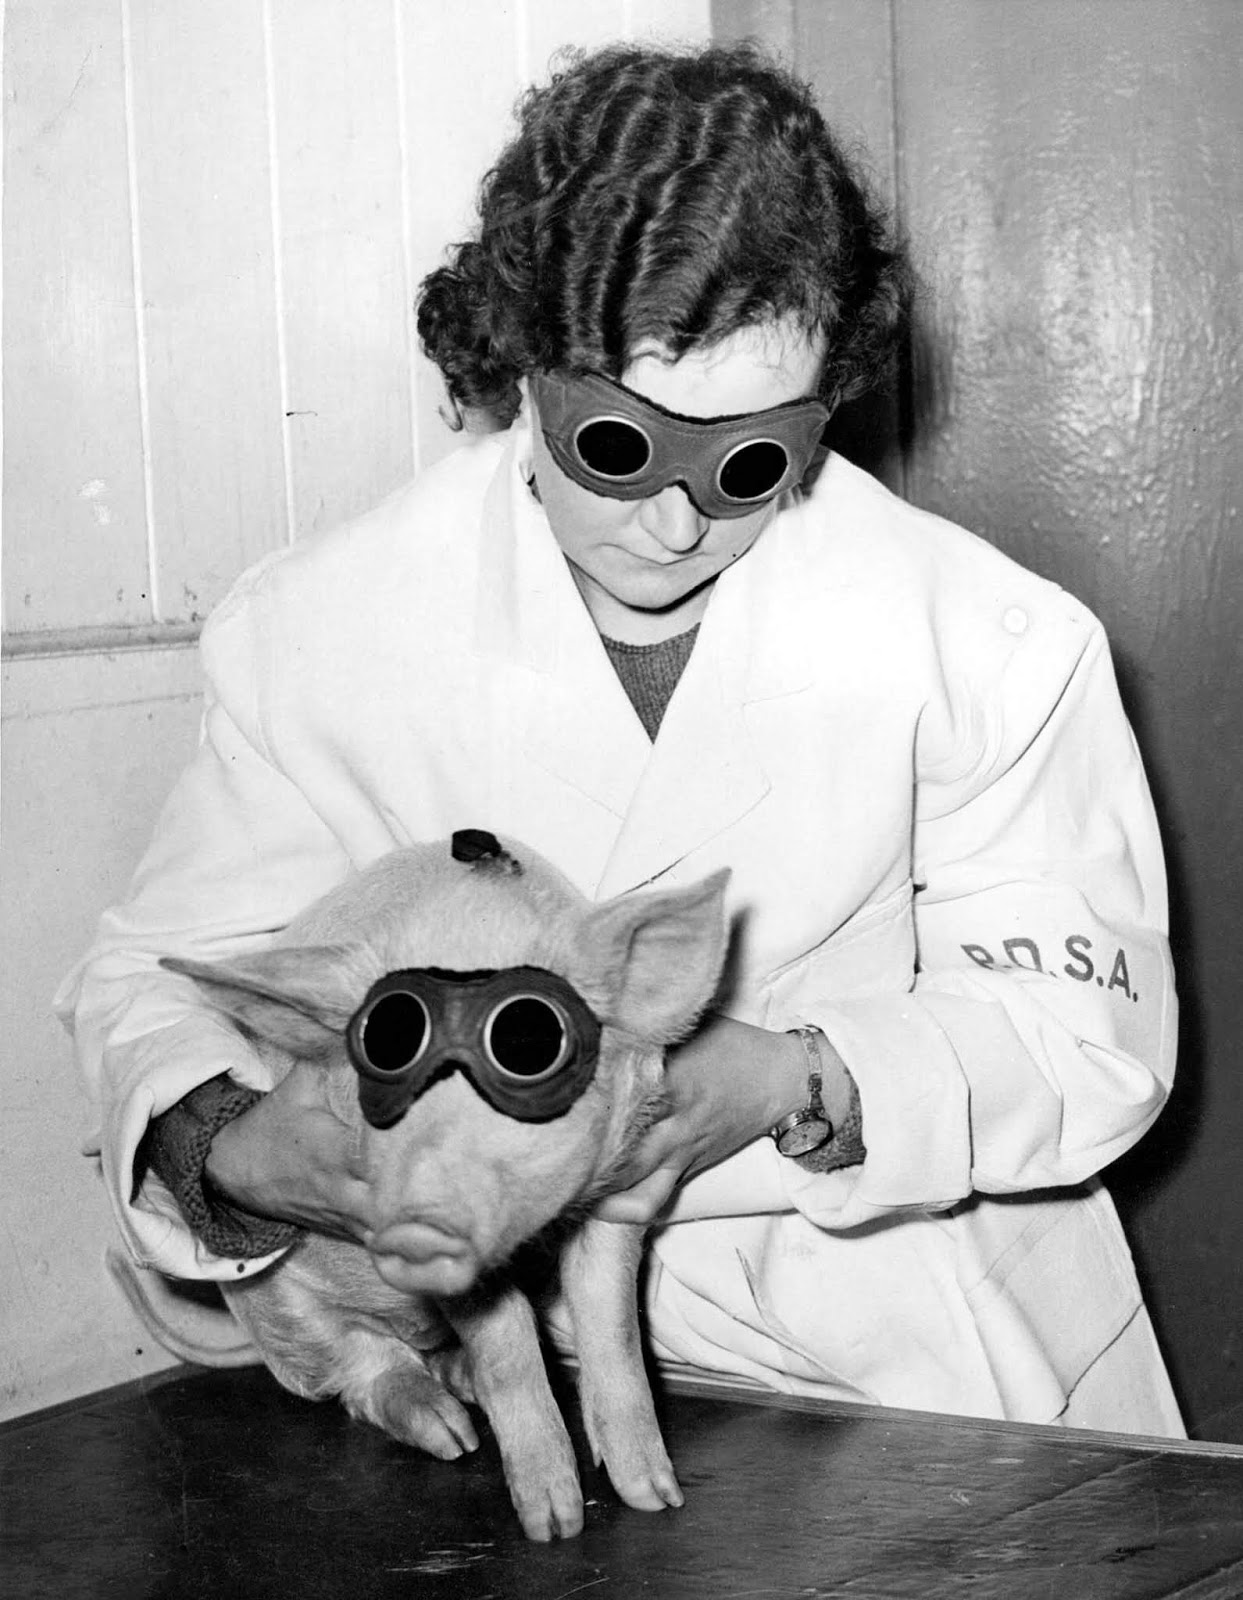 piglet which is being treated by the PDSA (People's Dispensary for Animals) in Ilford with a sun ray lamp, to cure a skin ailment. 1938.